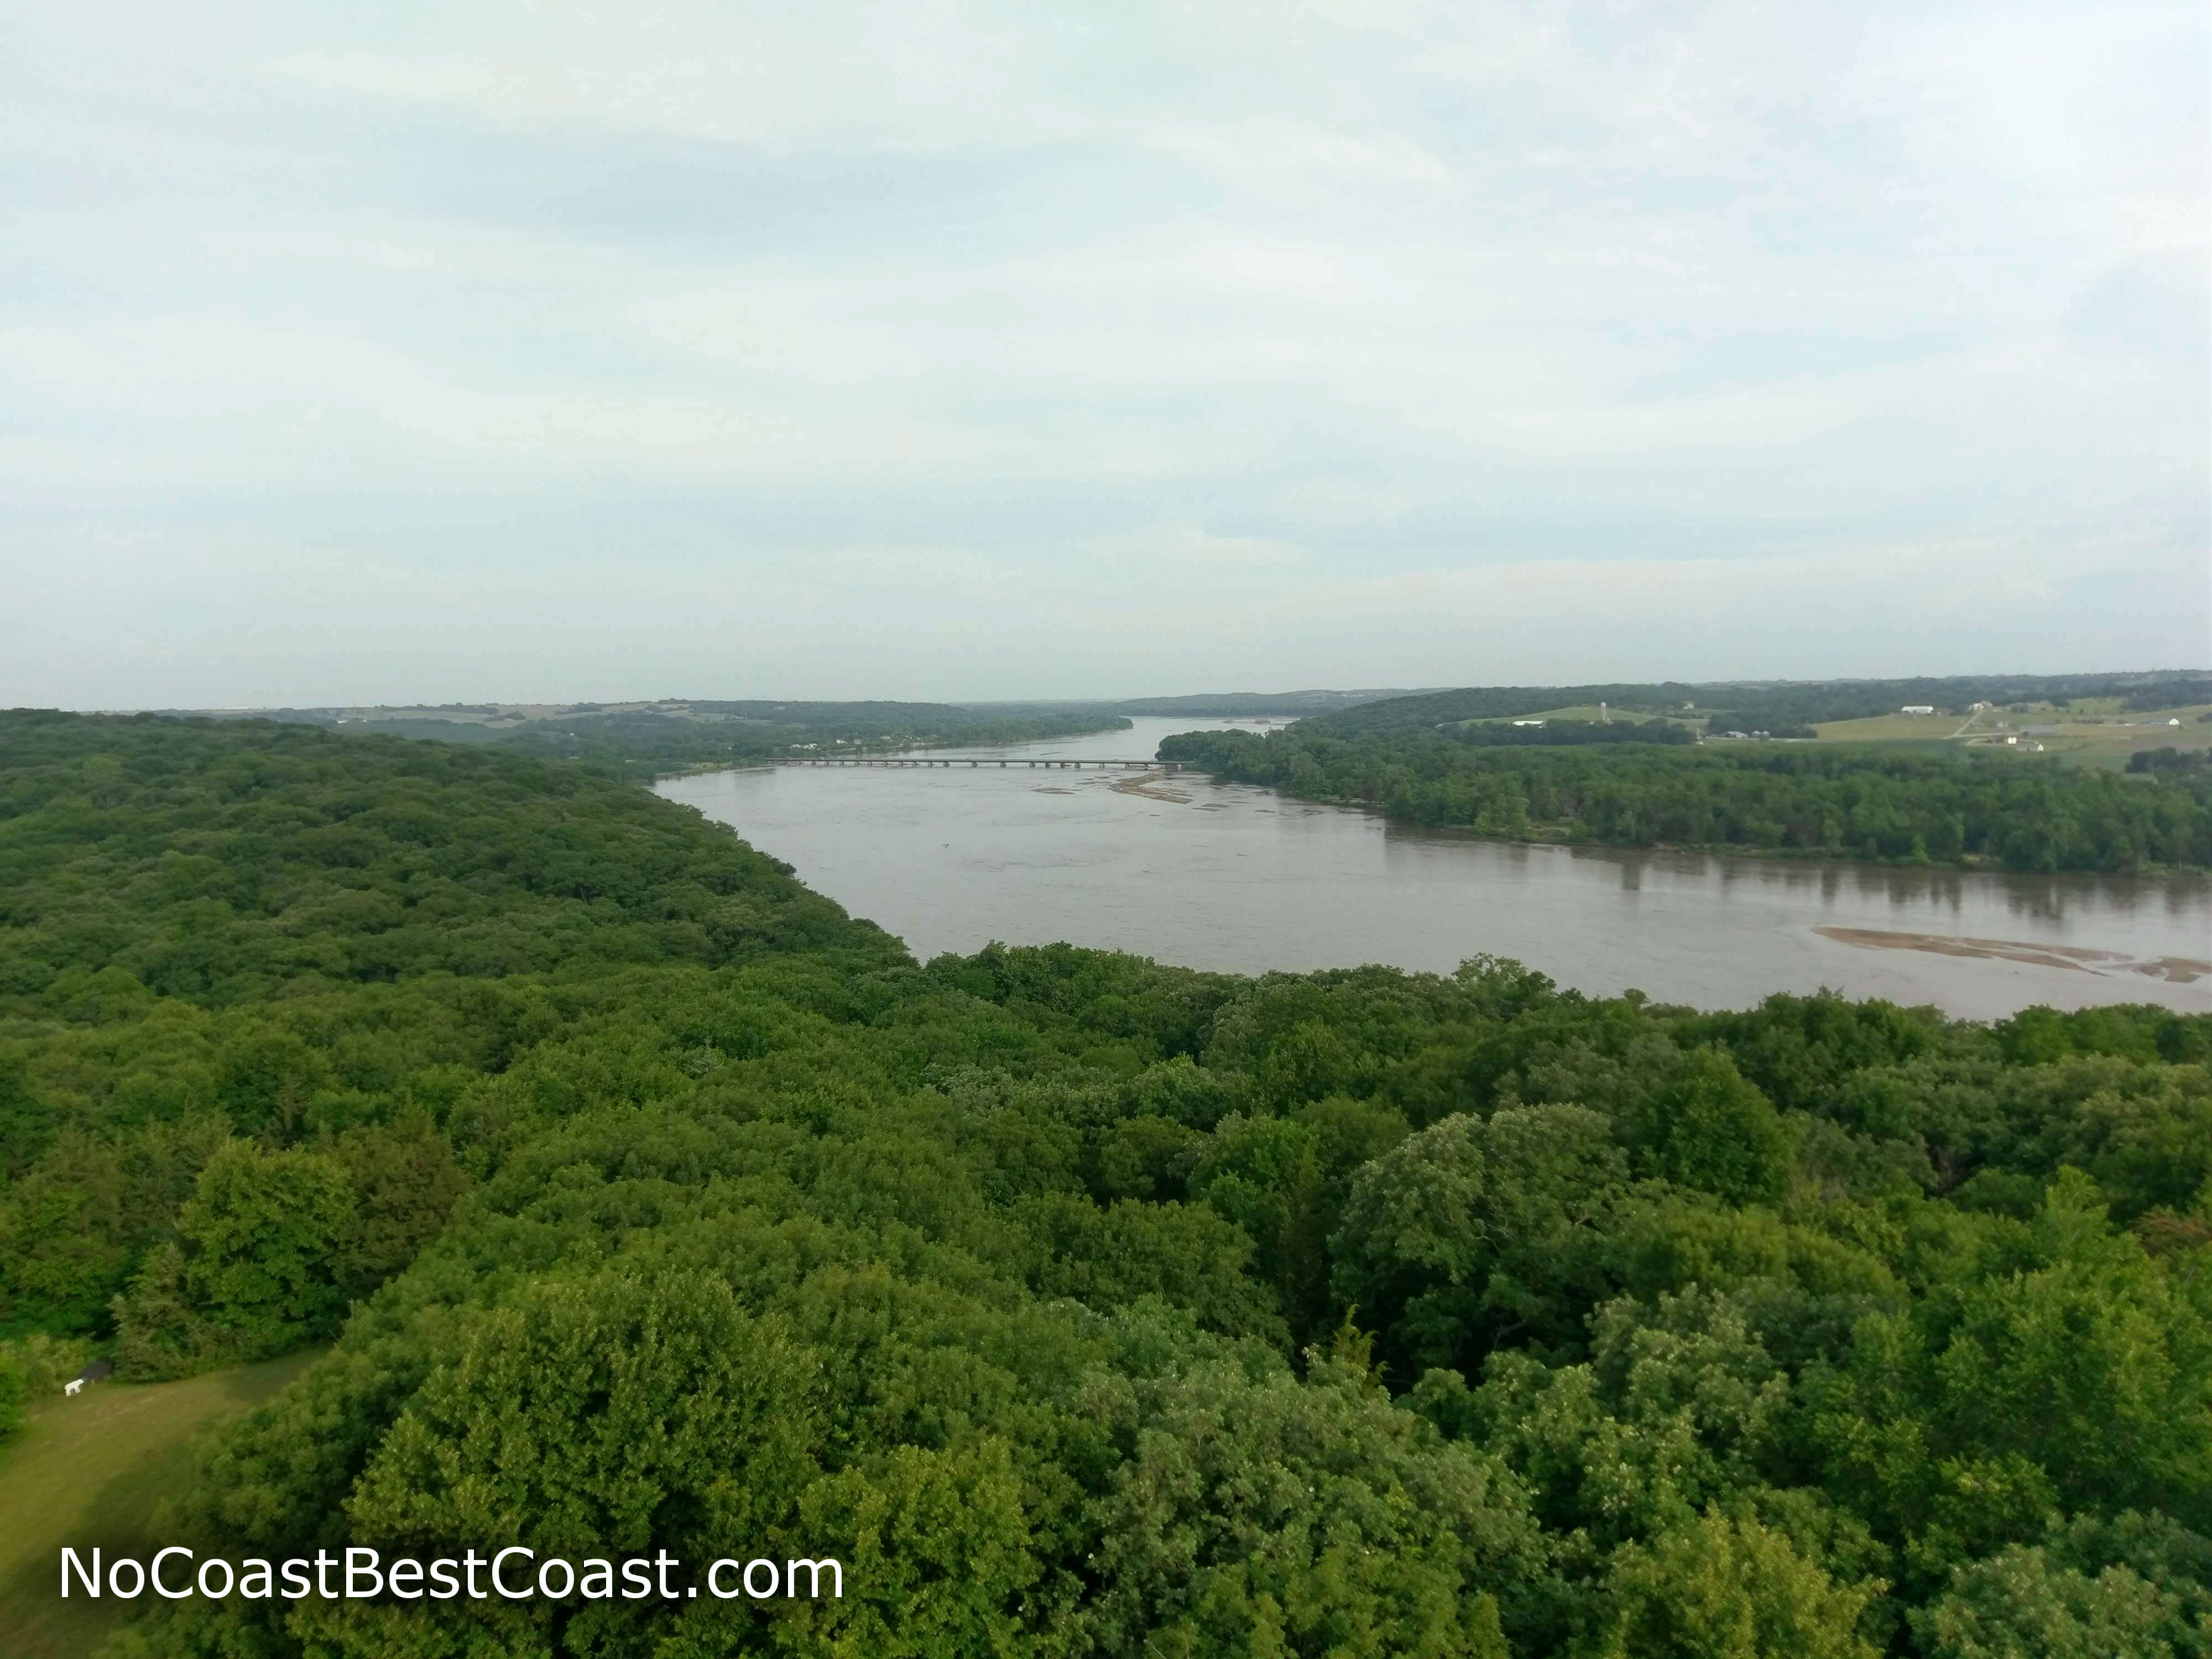 The view of the Platte River from the observation tower